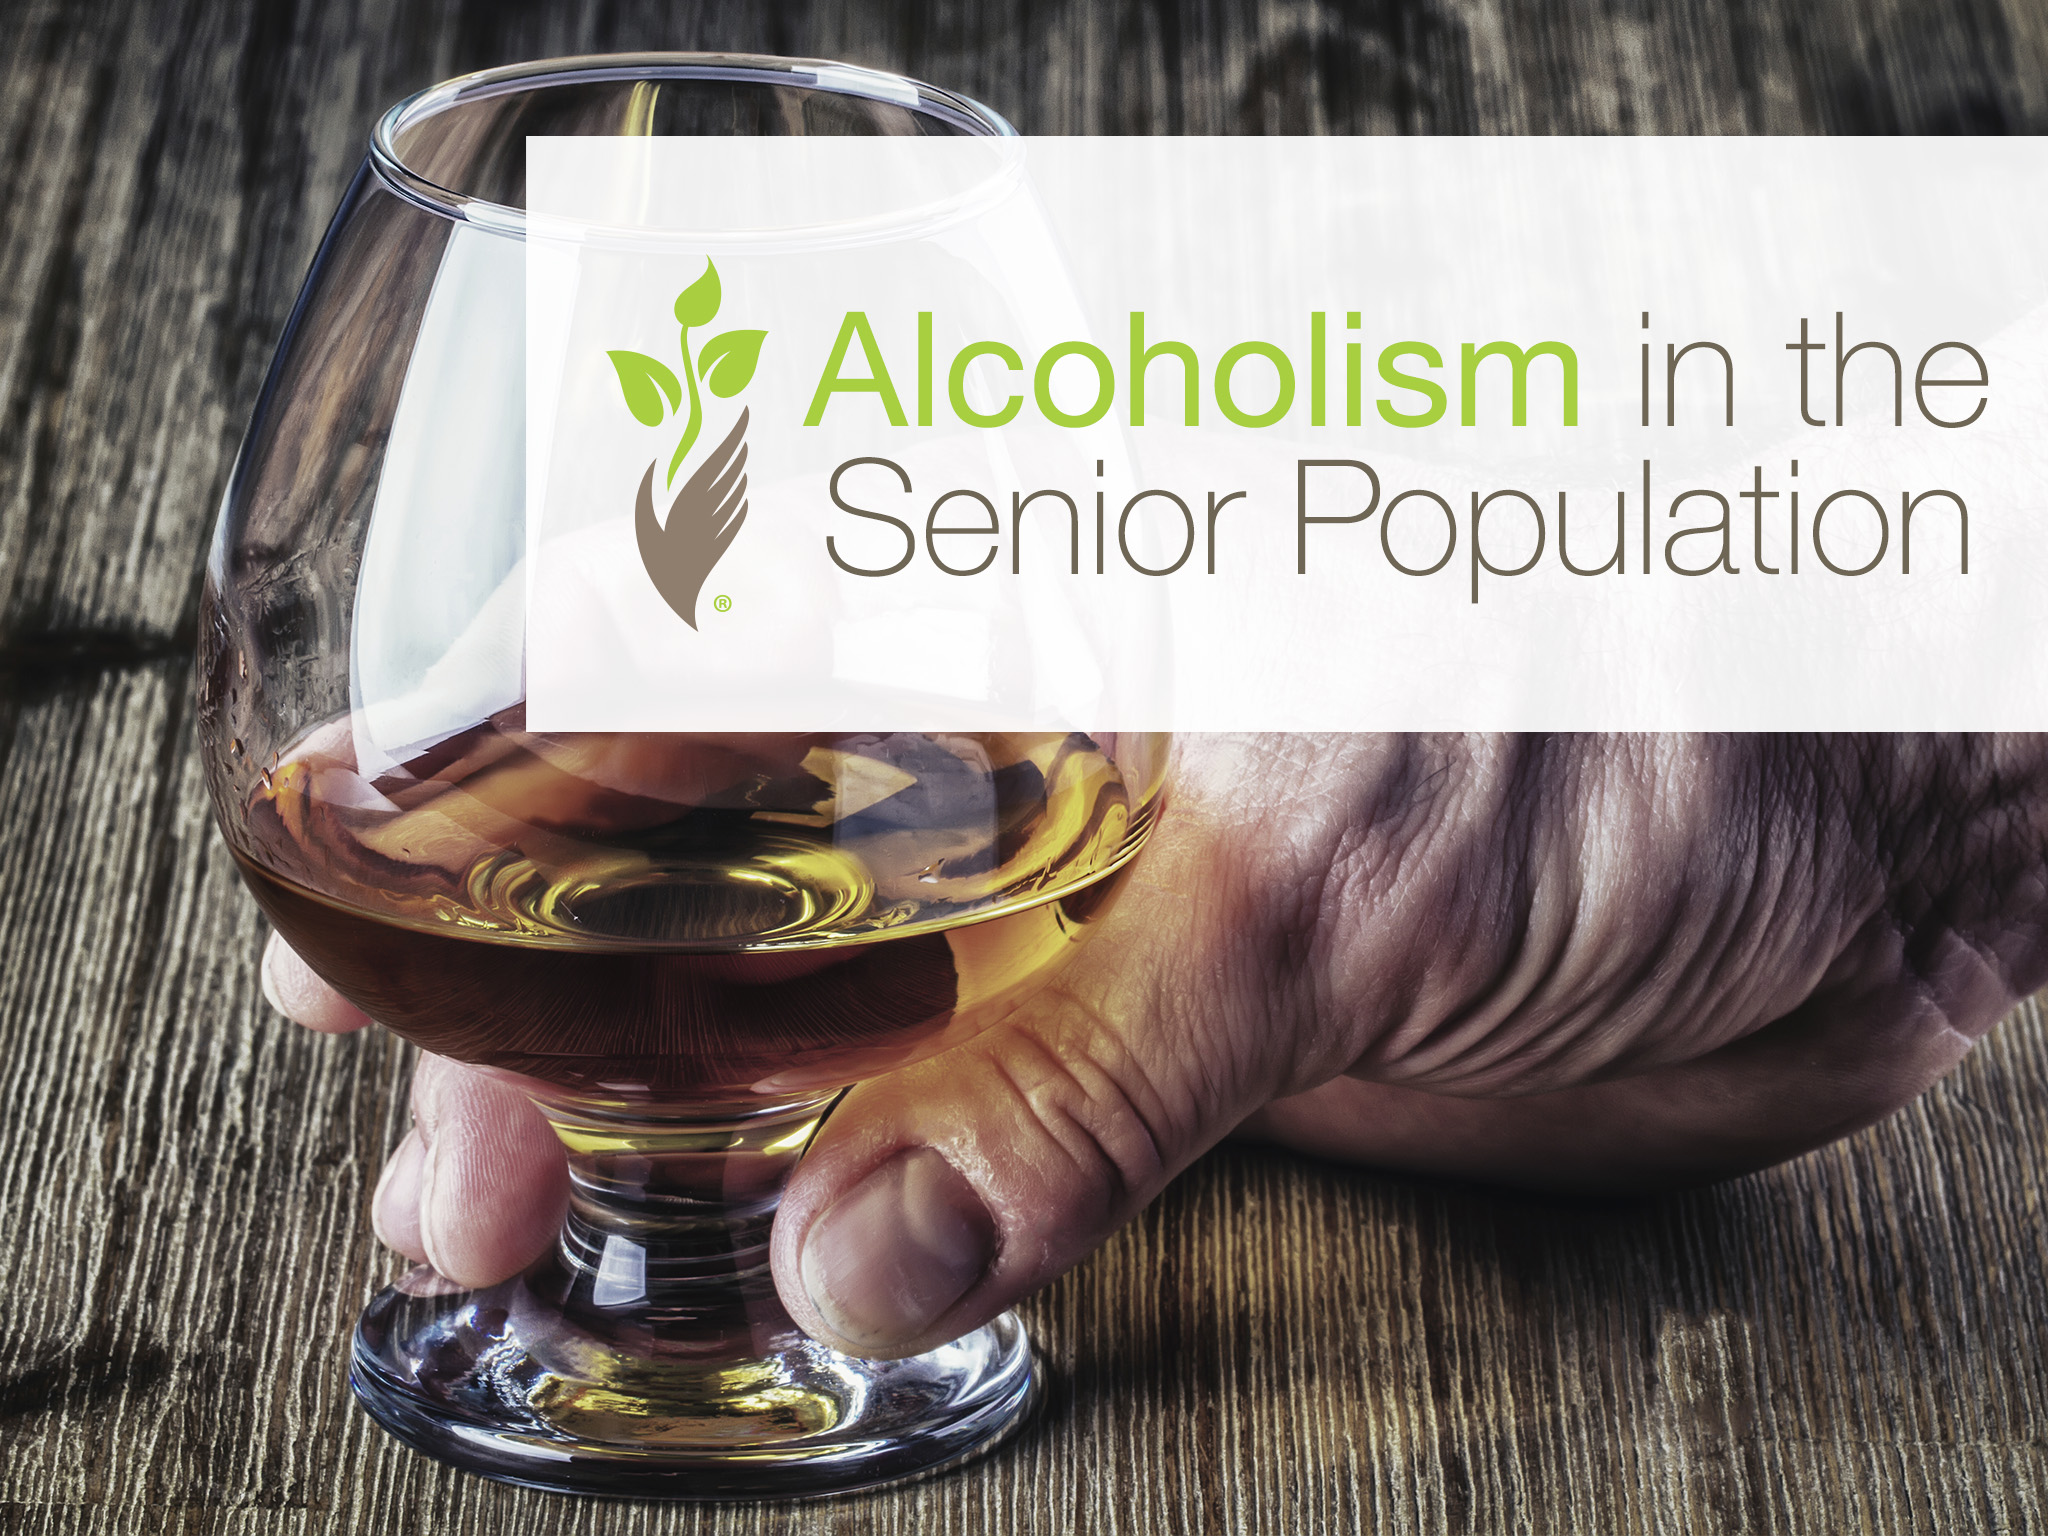 Alcoholism in the Senior Population